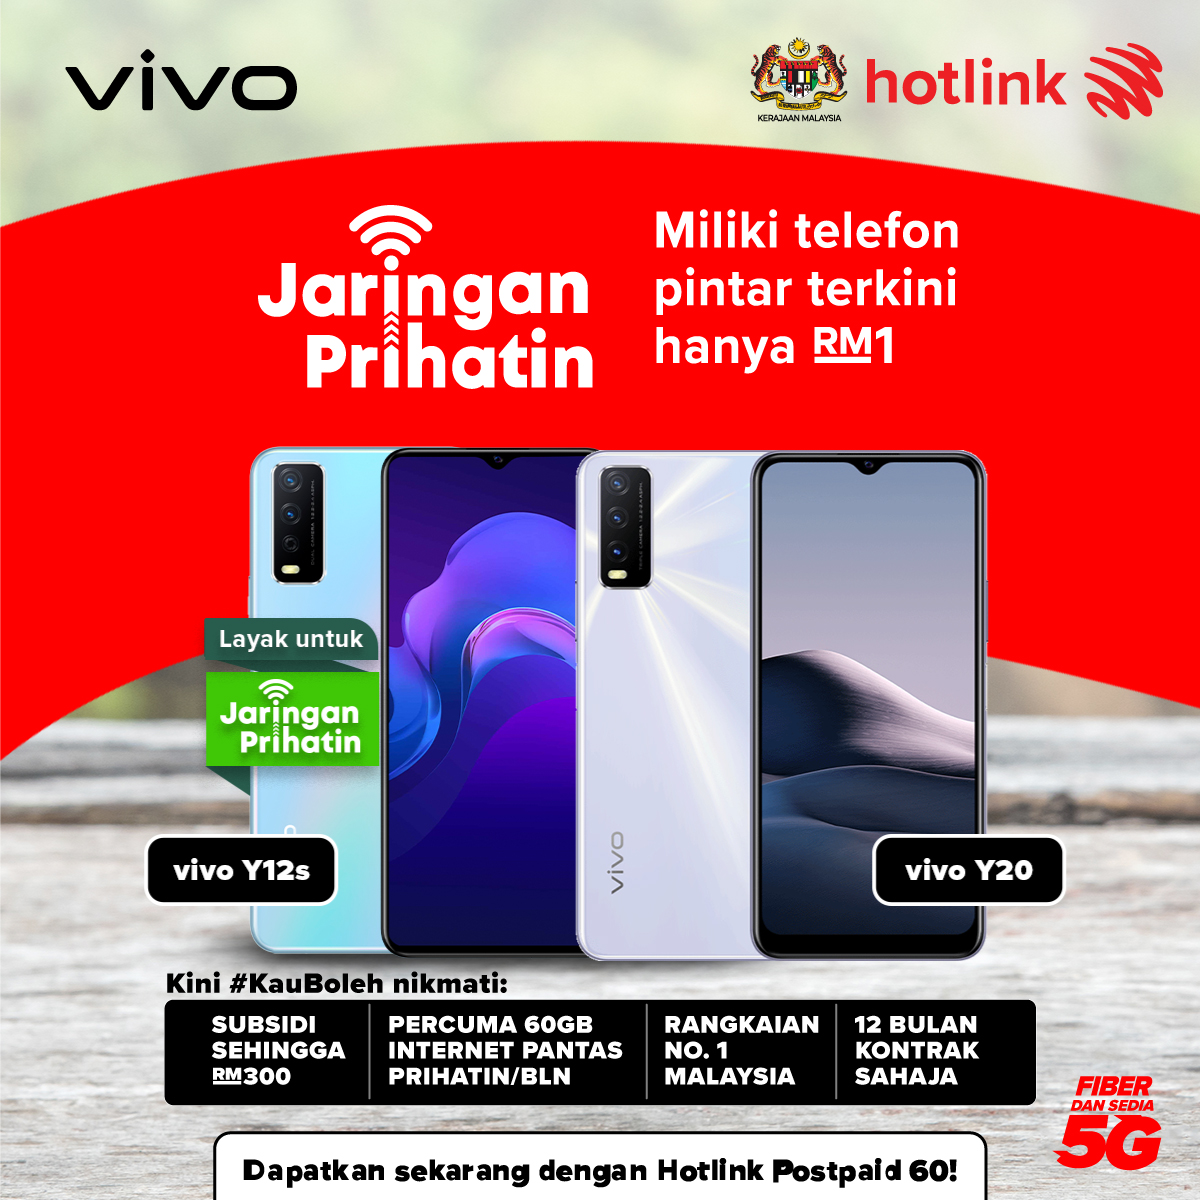 vivo Smartphones Are Now Available From as Low as RM1 Under Jaringan Prihatin